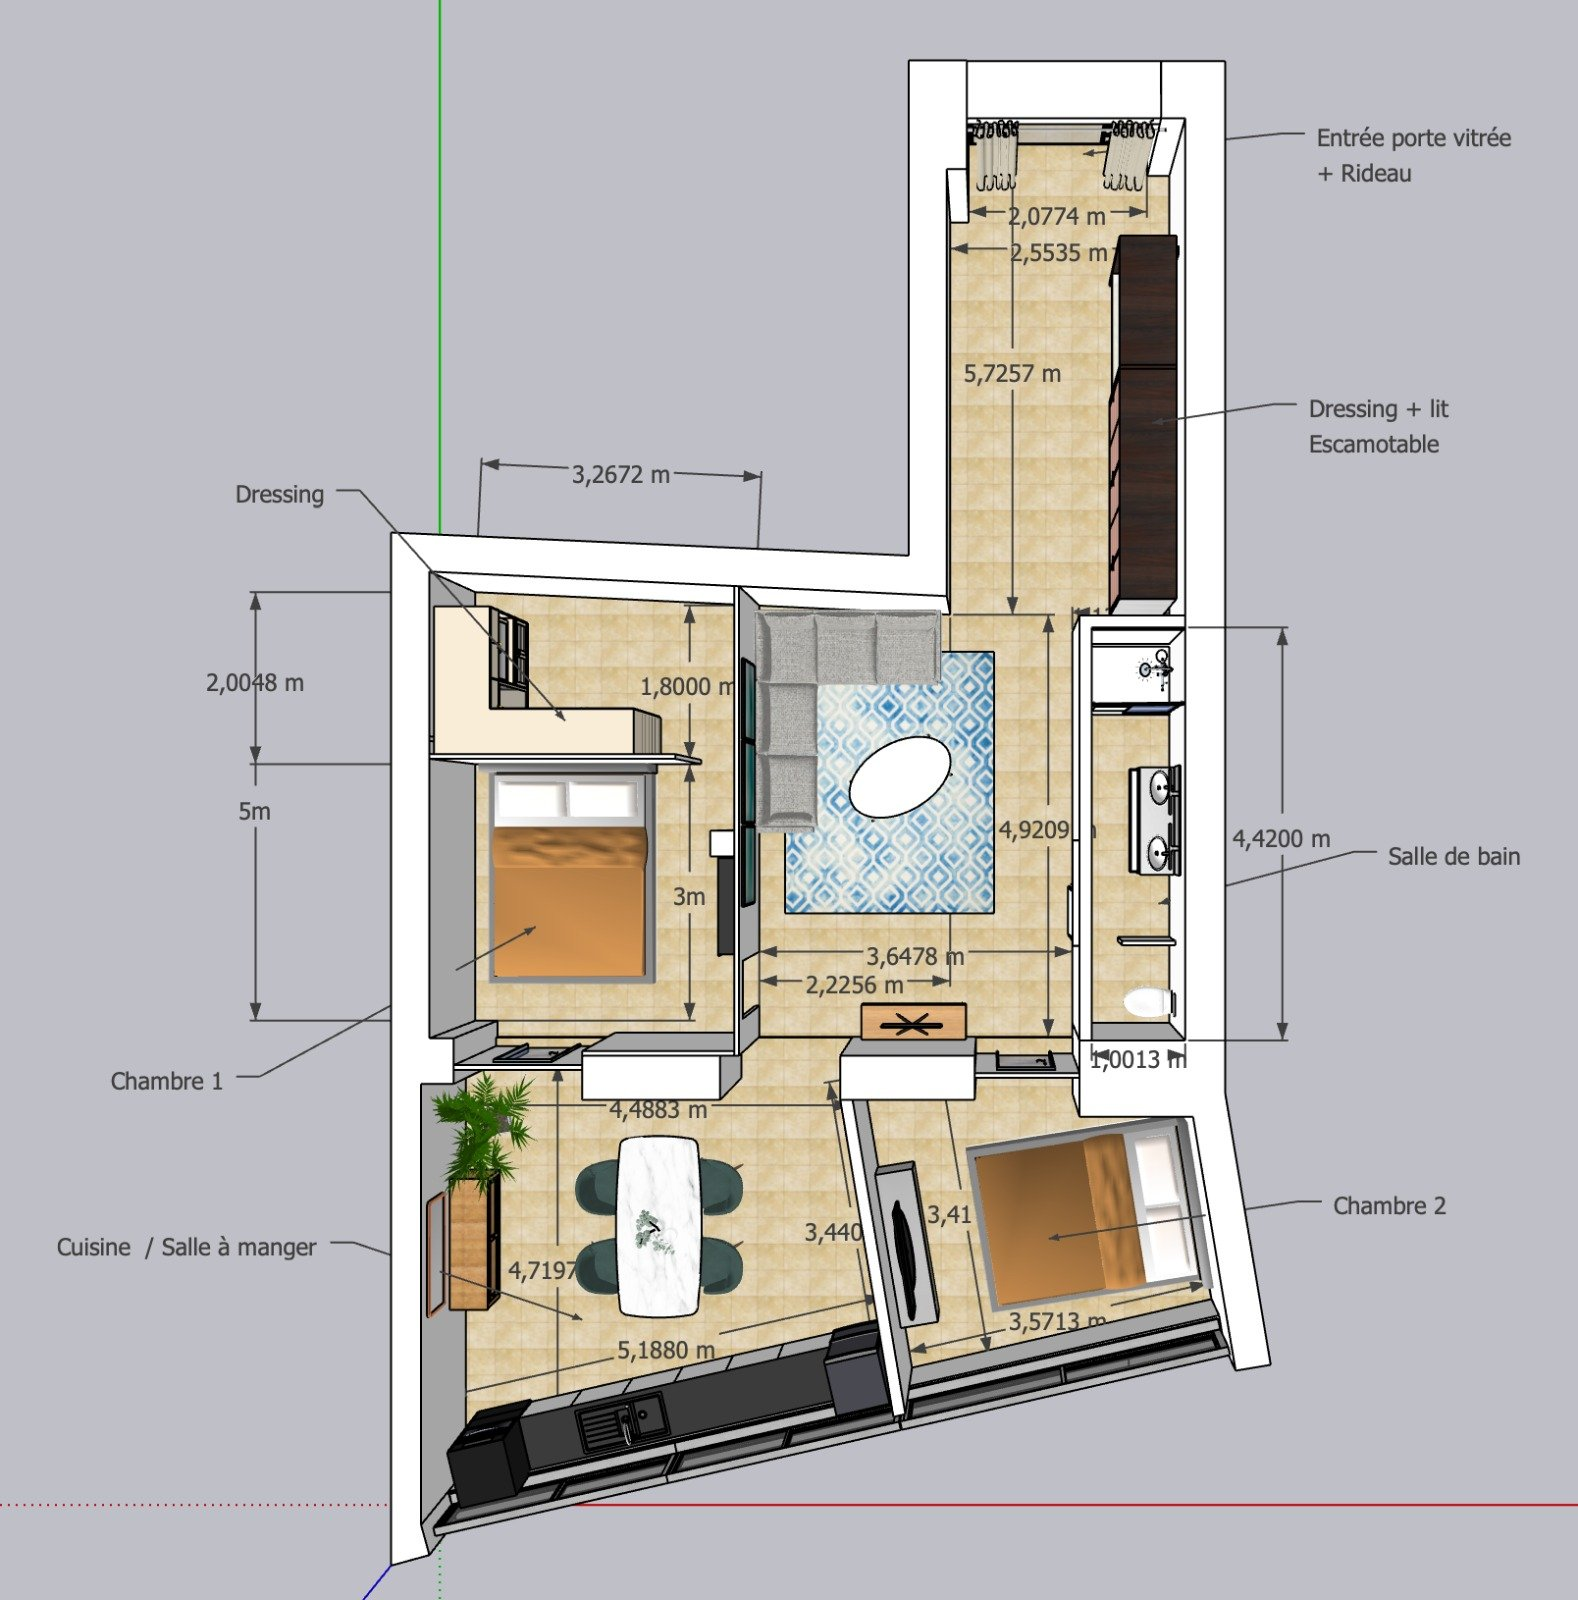 2-BR apartment plan